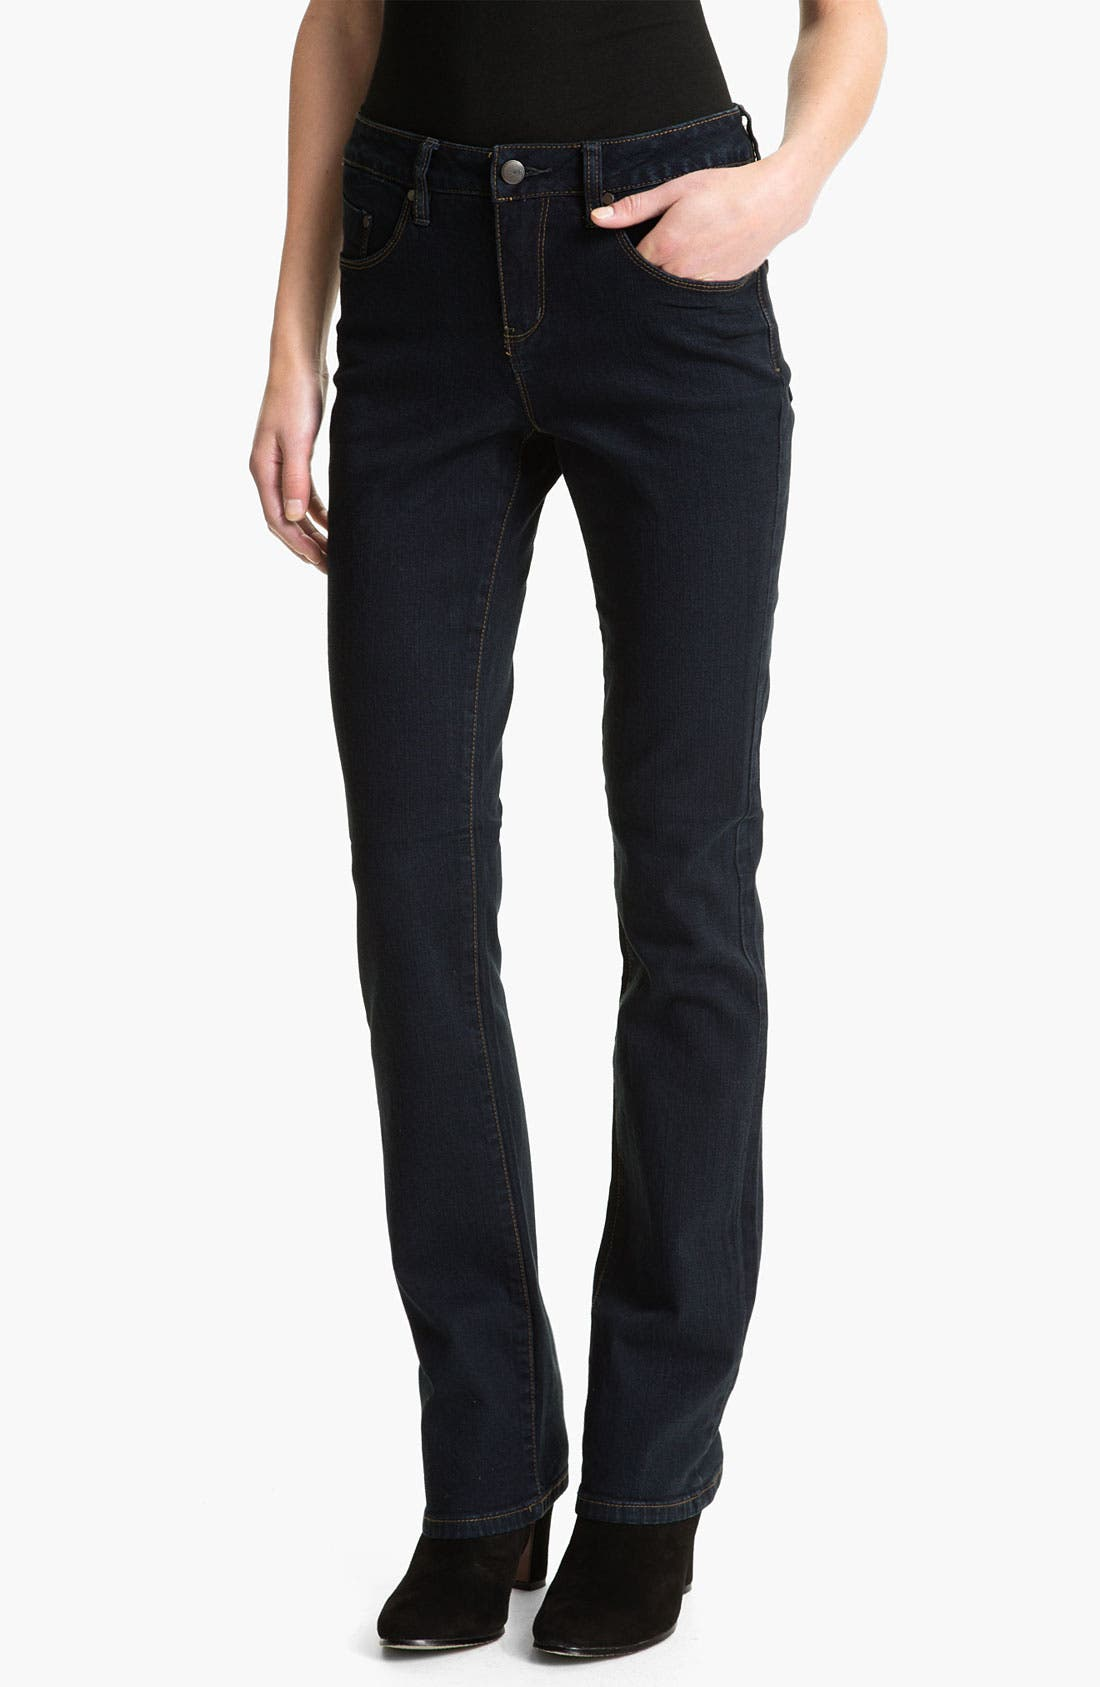 Main Image - Jag Jeans 'Foster' Narrow Bootcut Jeans (Petite)